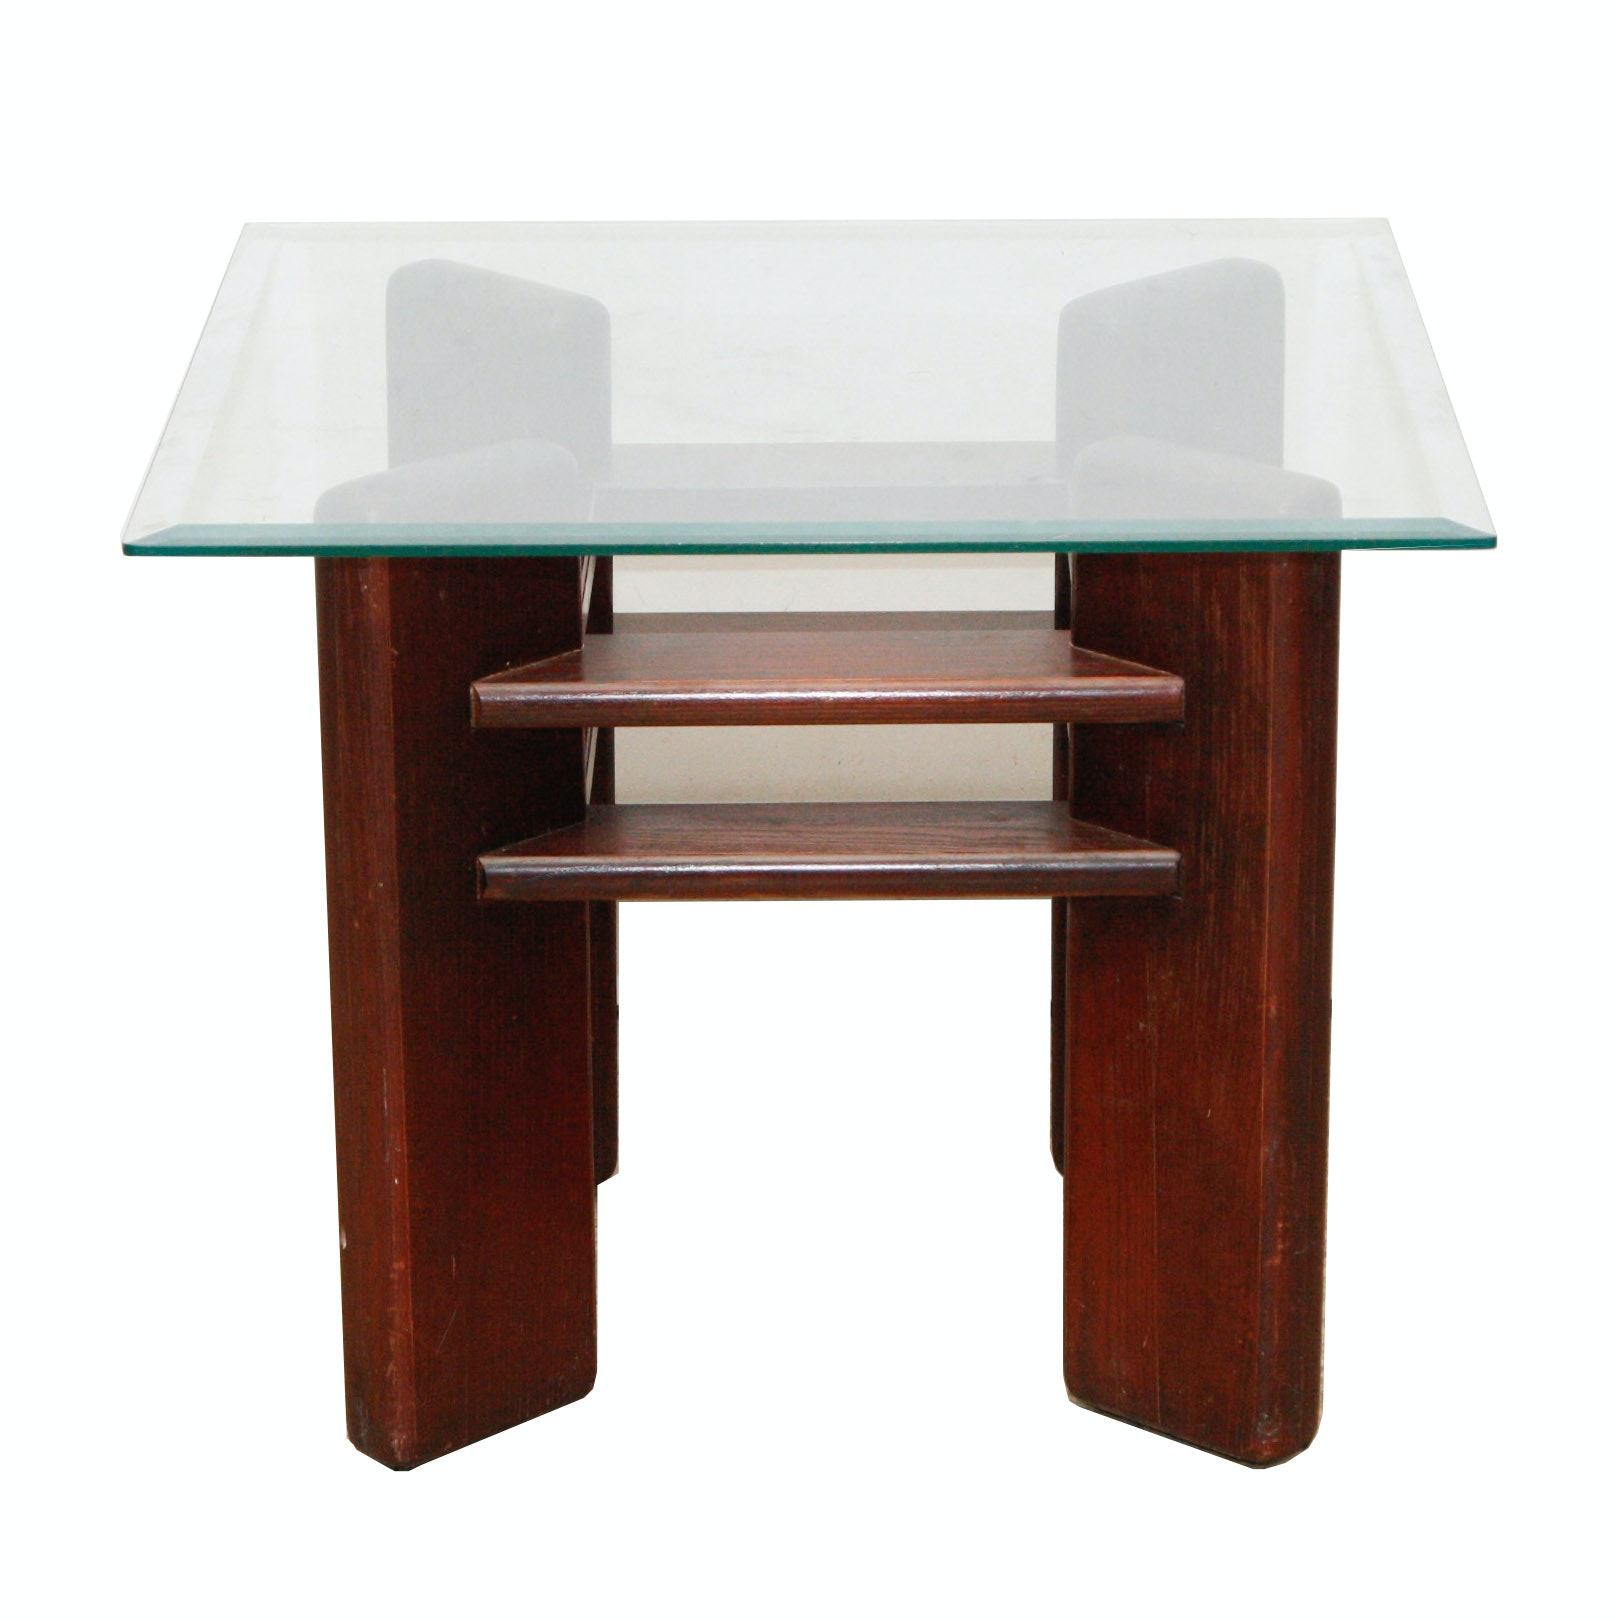 Modernist Style Wood and Glass End Table